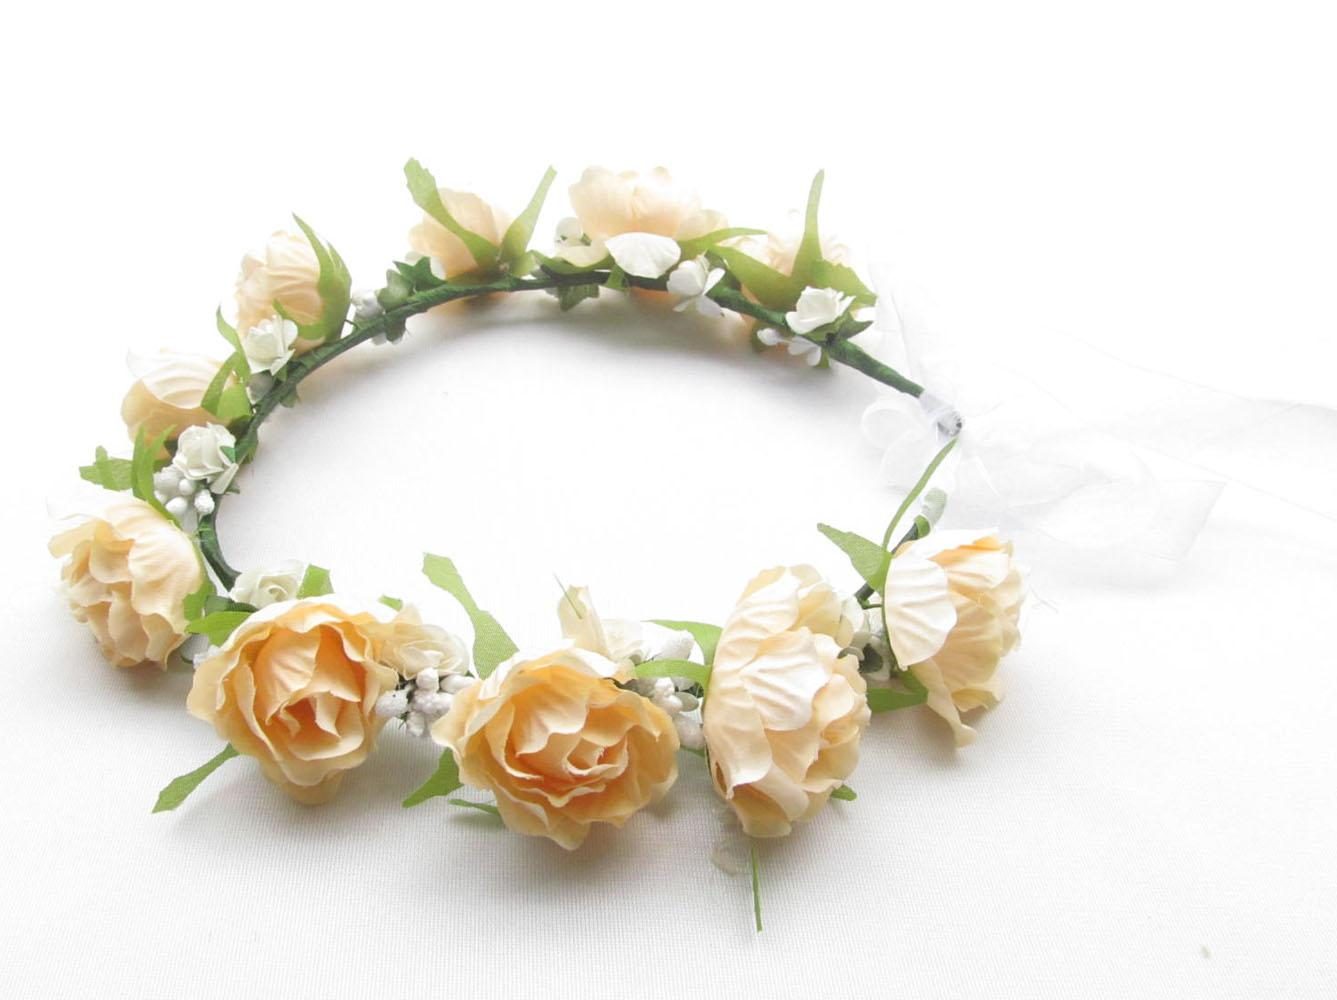 2018 100 Handmade Silk Rose Flower Headbands With Ribbon For